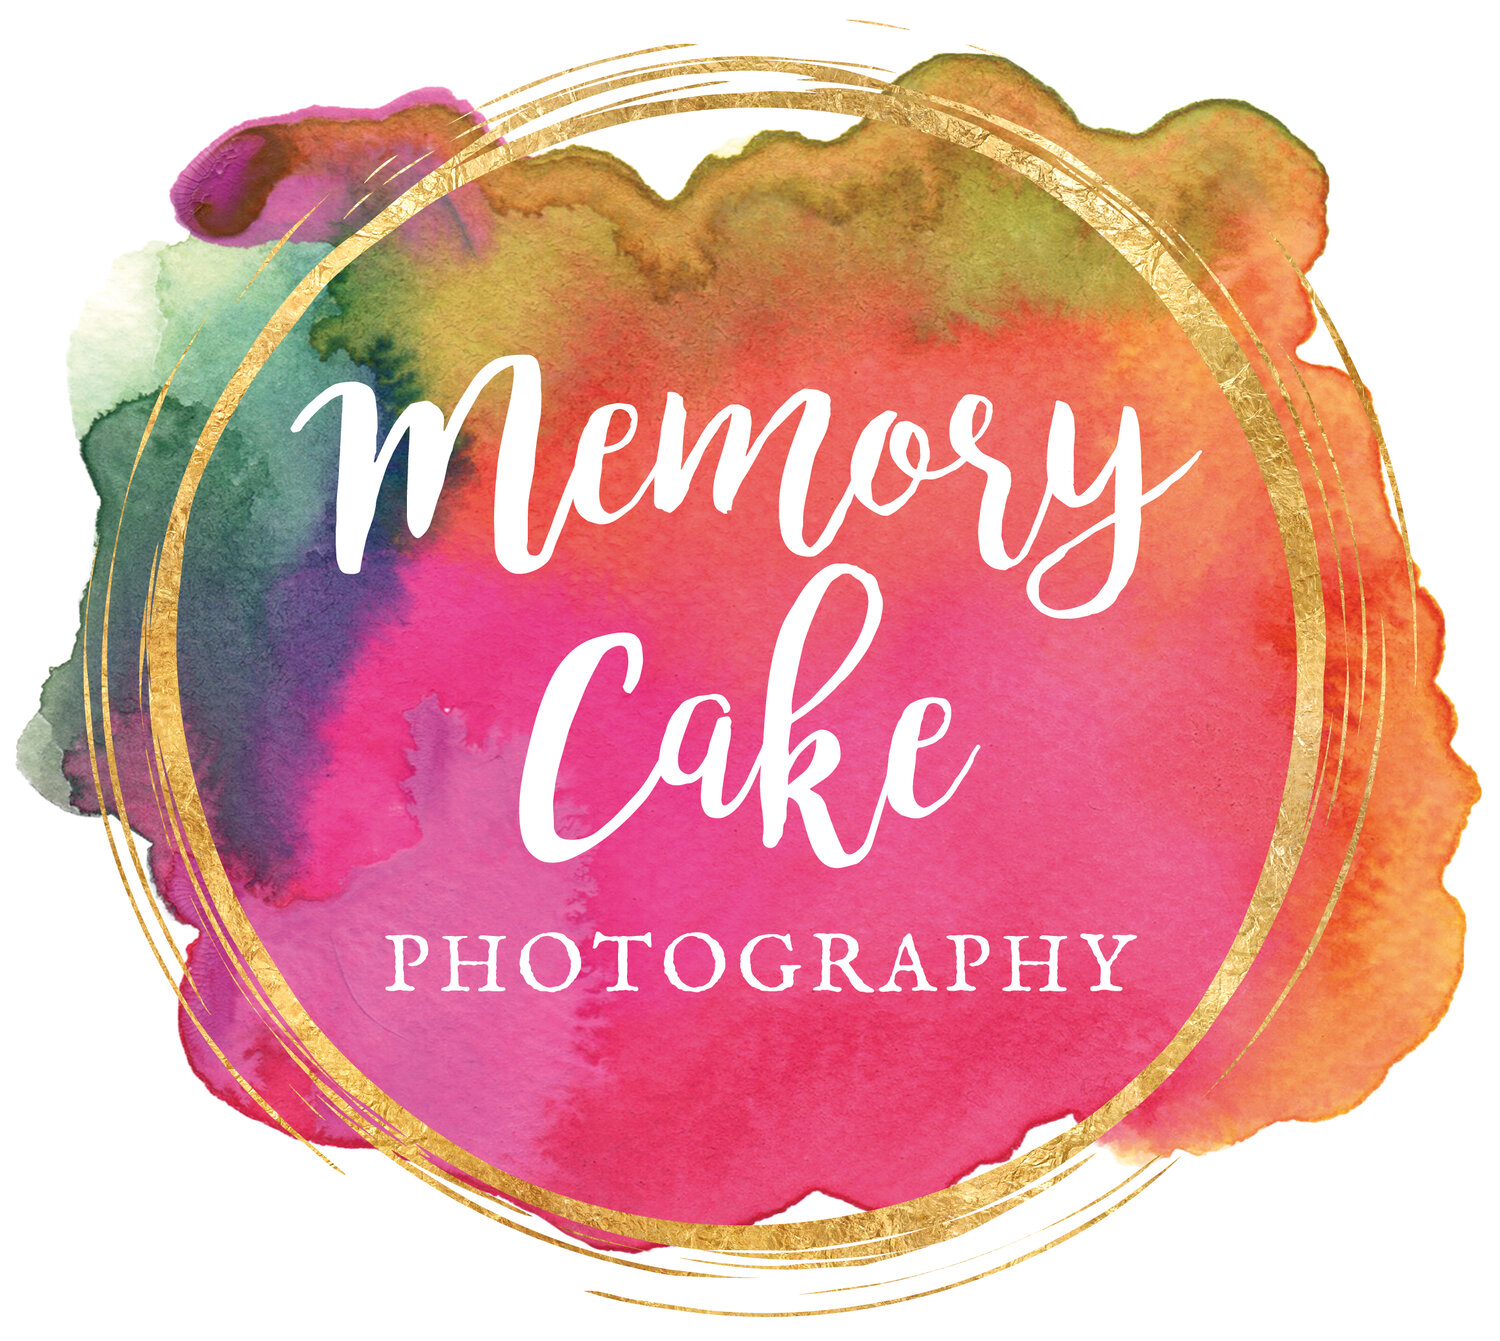 Memory cake photography